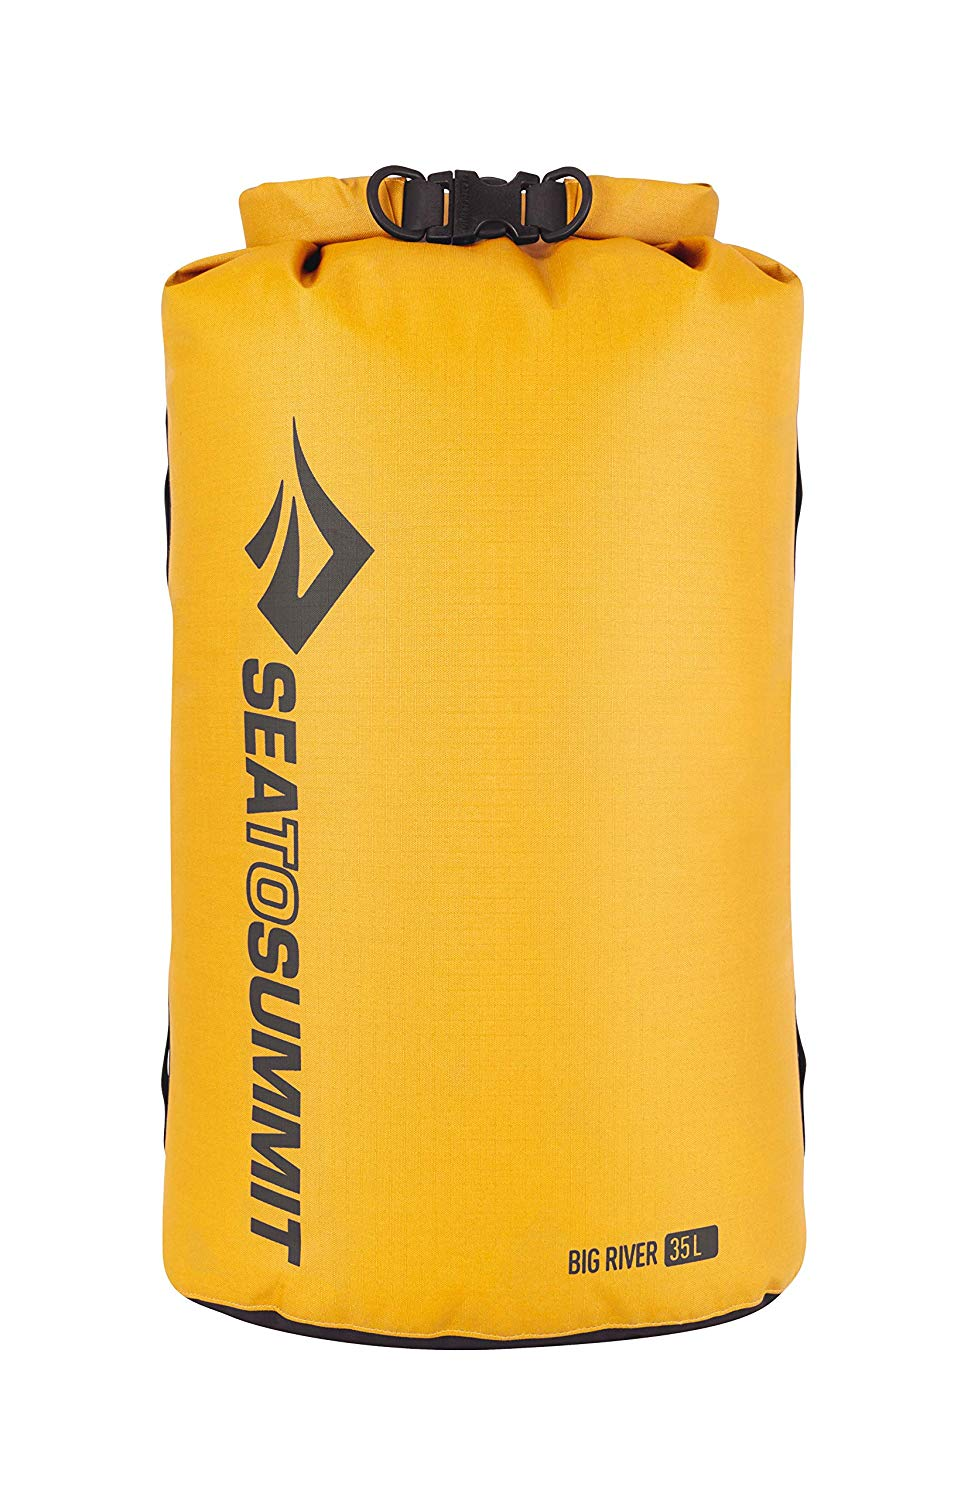 Sea to Summit Big River Waterproof Dry Bag